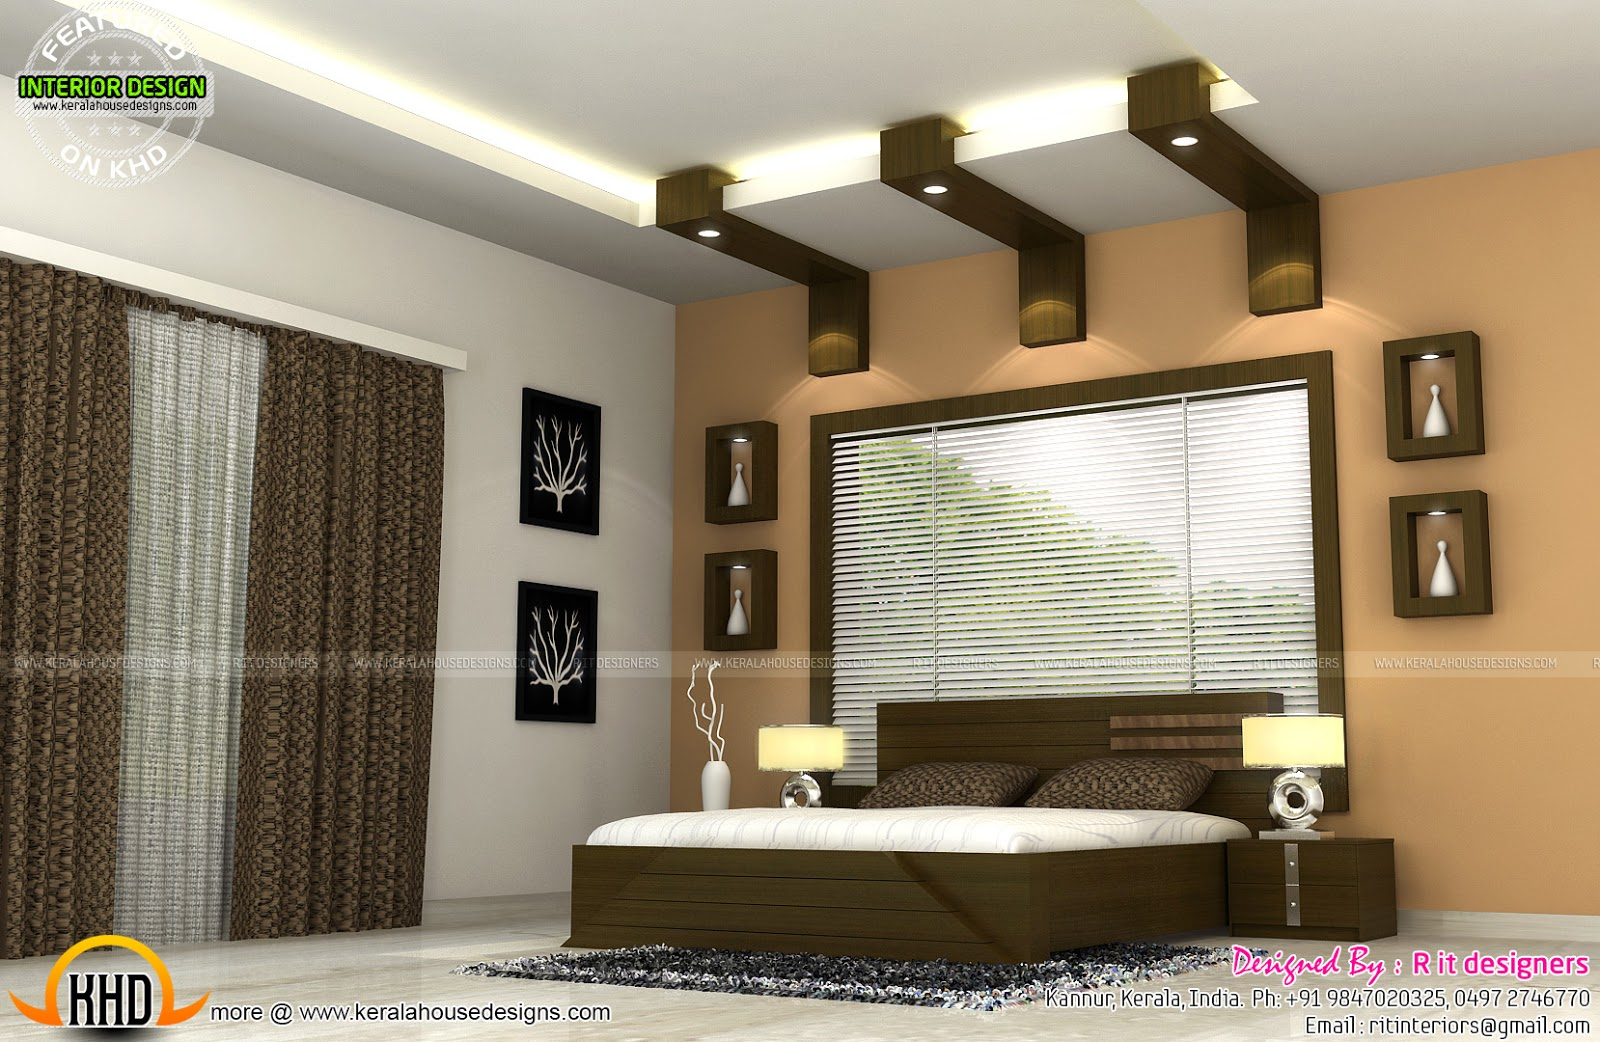 Interiors of bedrooms and kitchen kerala home design and for Interior design your home